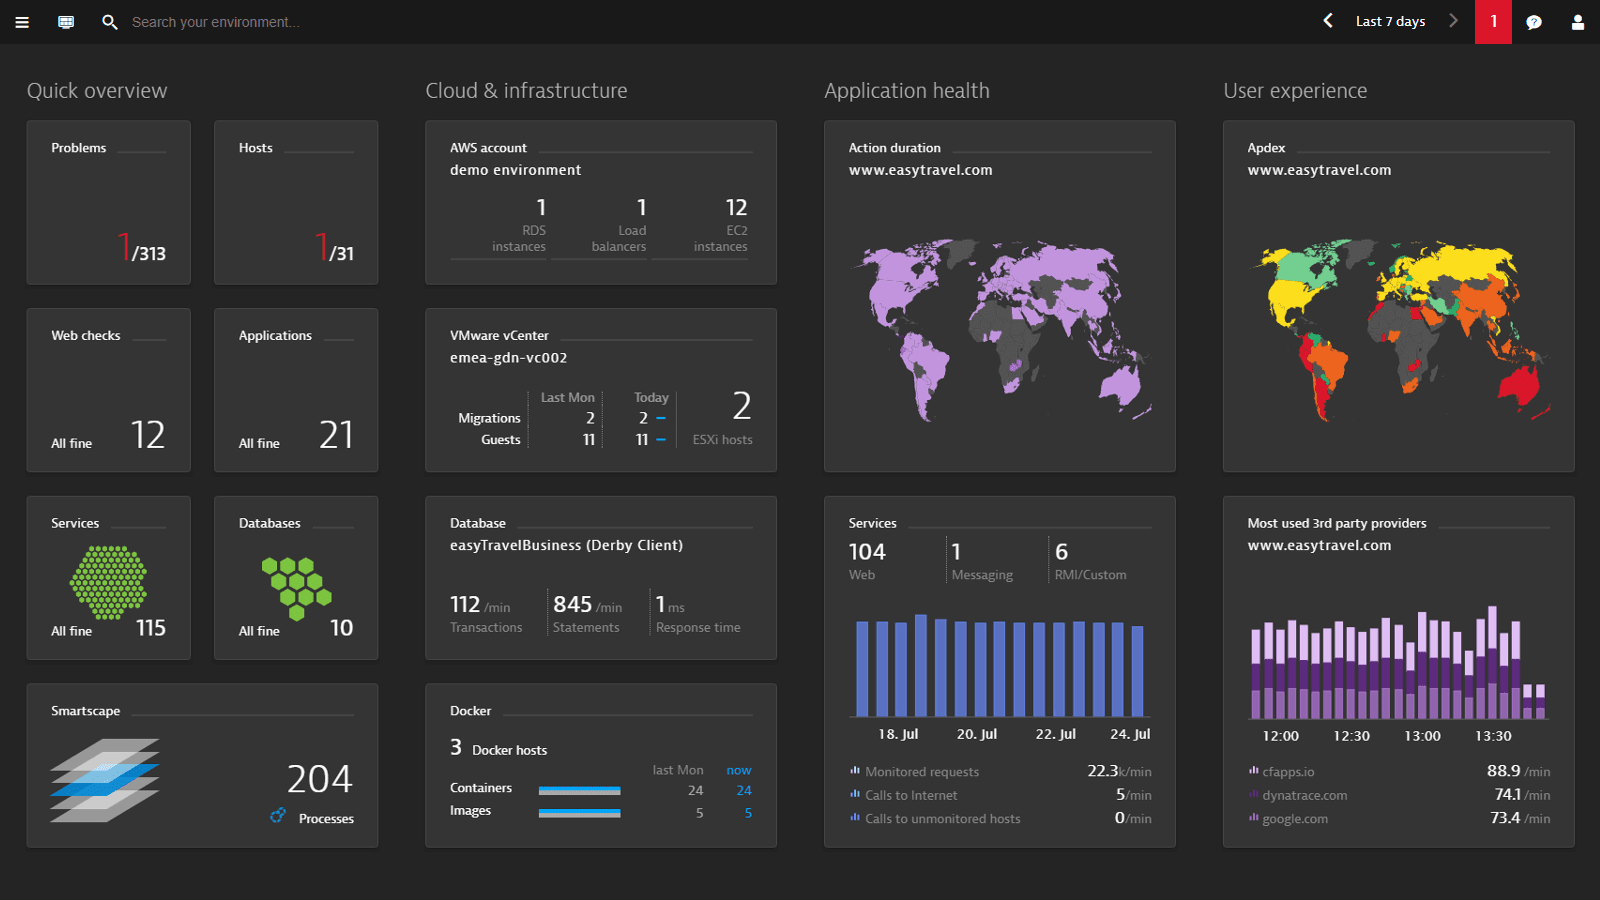 The customizable dashboard shows all important facts of your web application running on Heroku in one spot